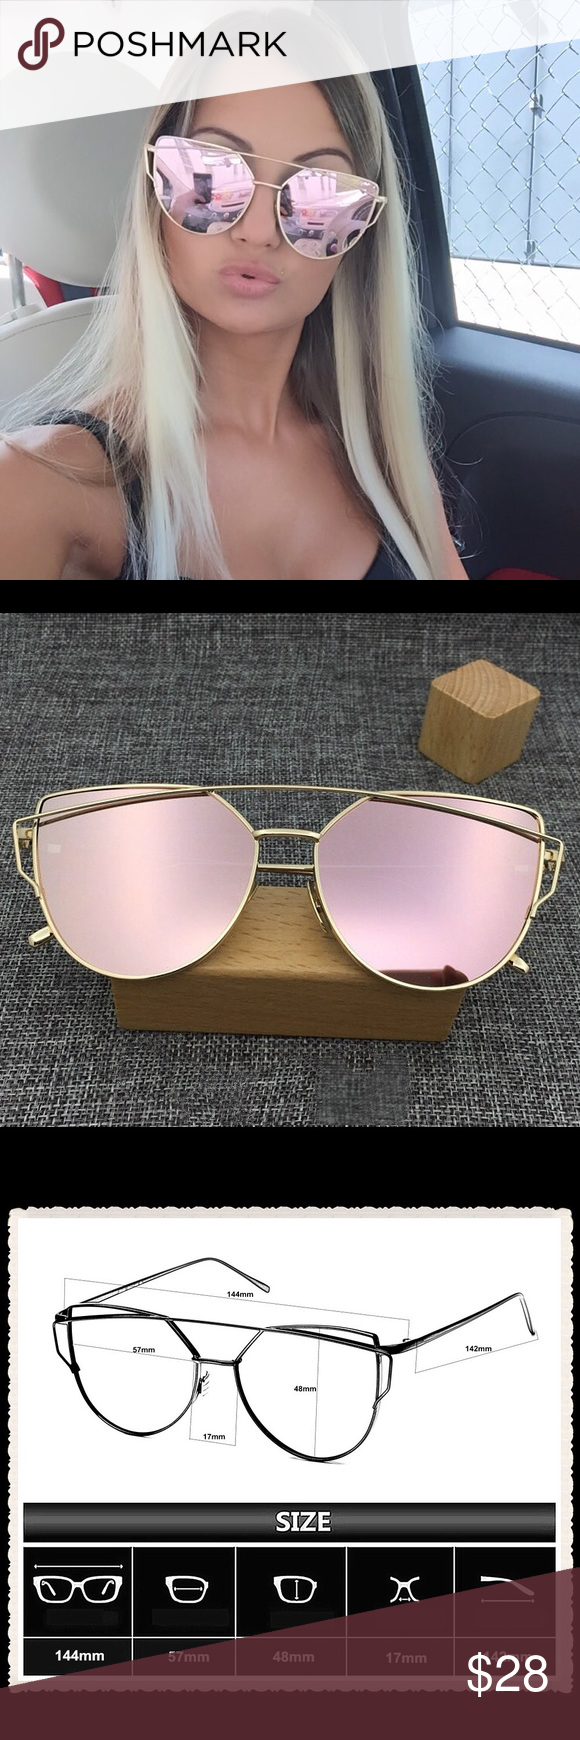 Mirror Cross Wire Cat Eye Sunglasses w/ Case Pink rose mirror lenses with gold metal frames and nose pieces. Comes with microfiber dust bag/cleaning cloth and a free case. New in case, no tag. Accessories Sunglasses